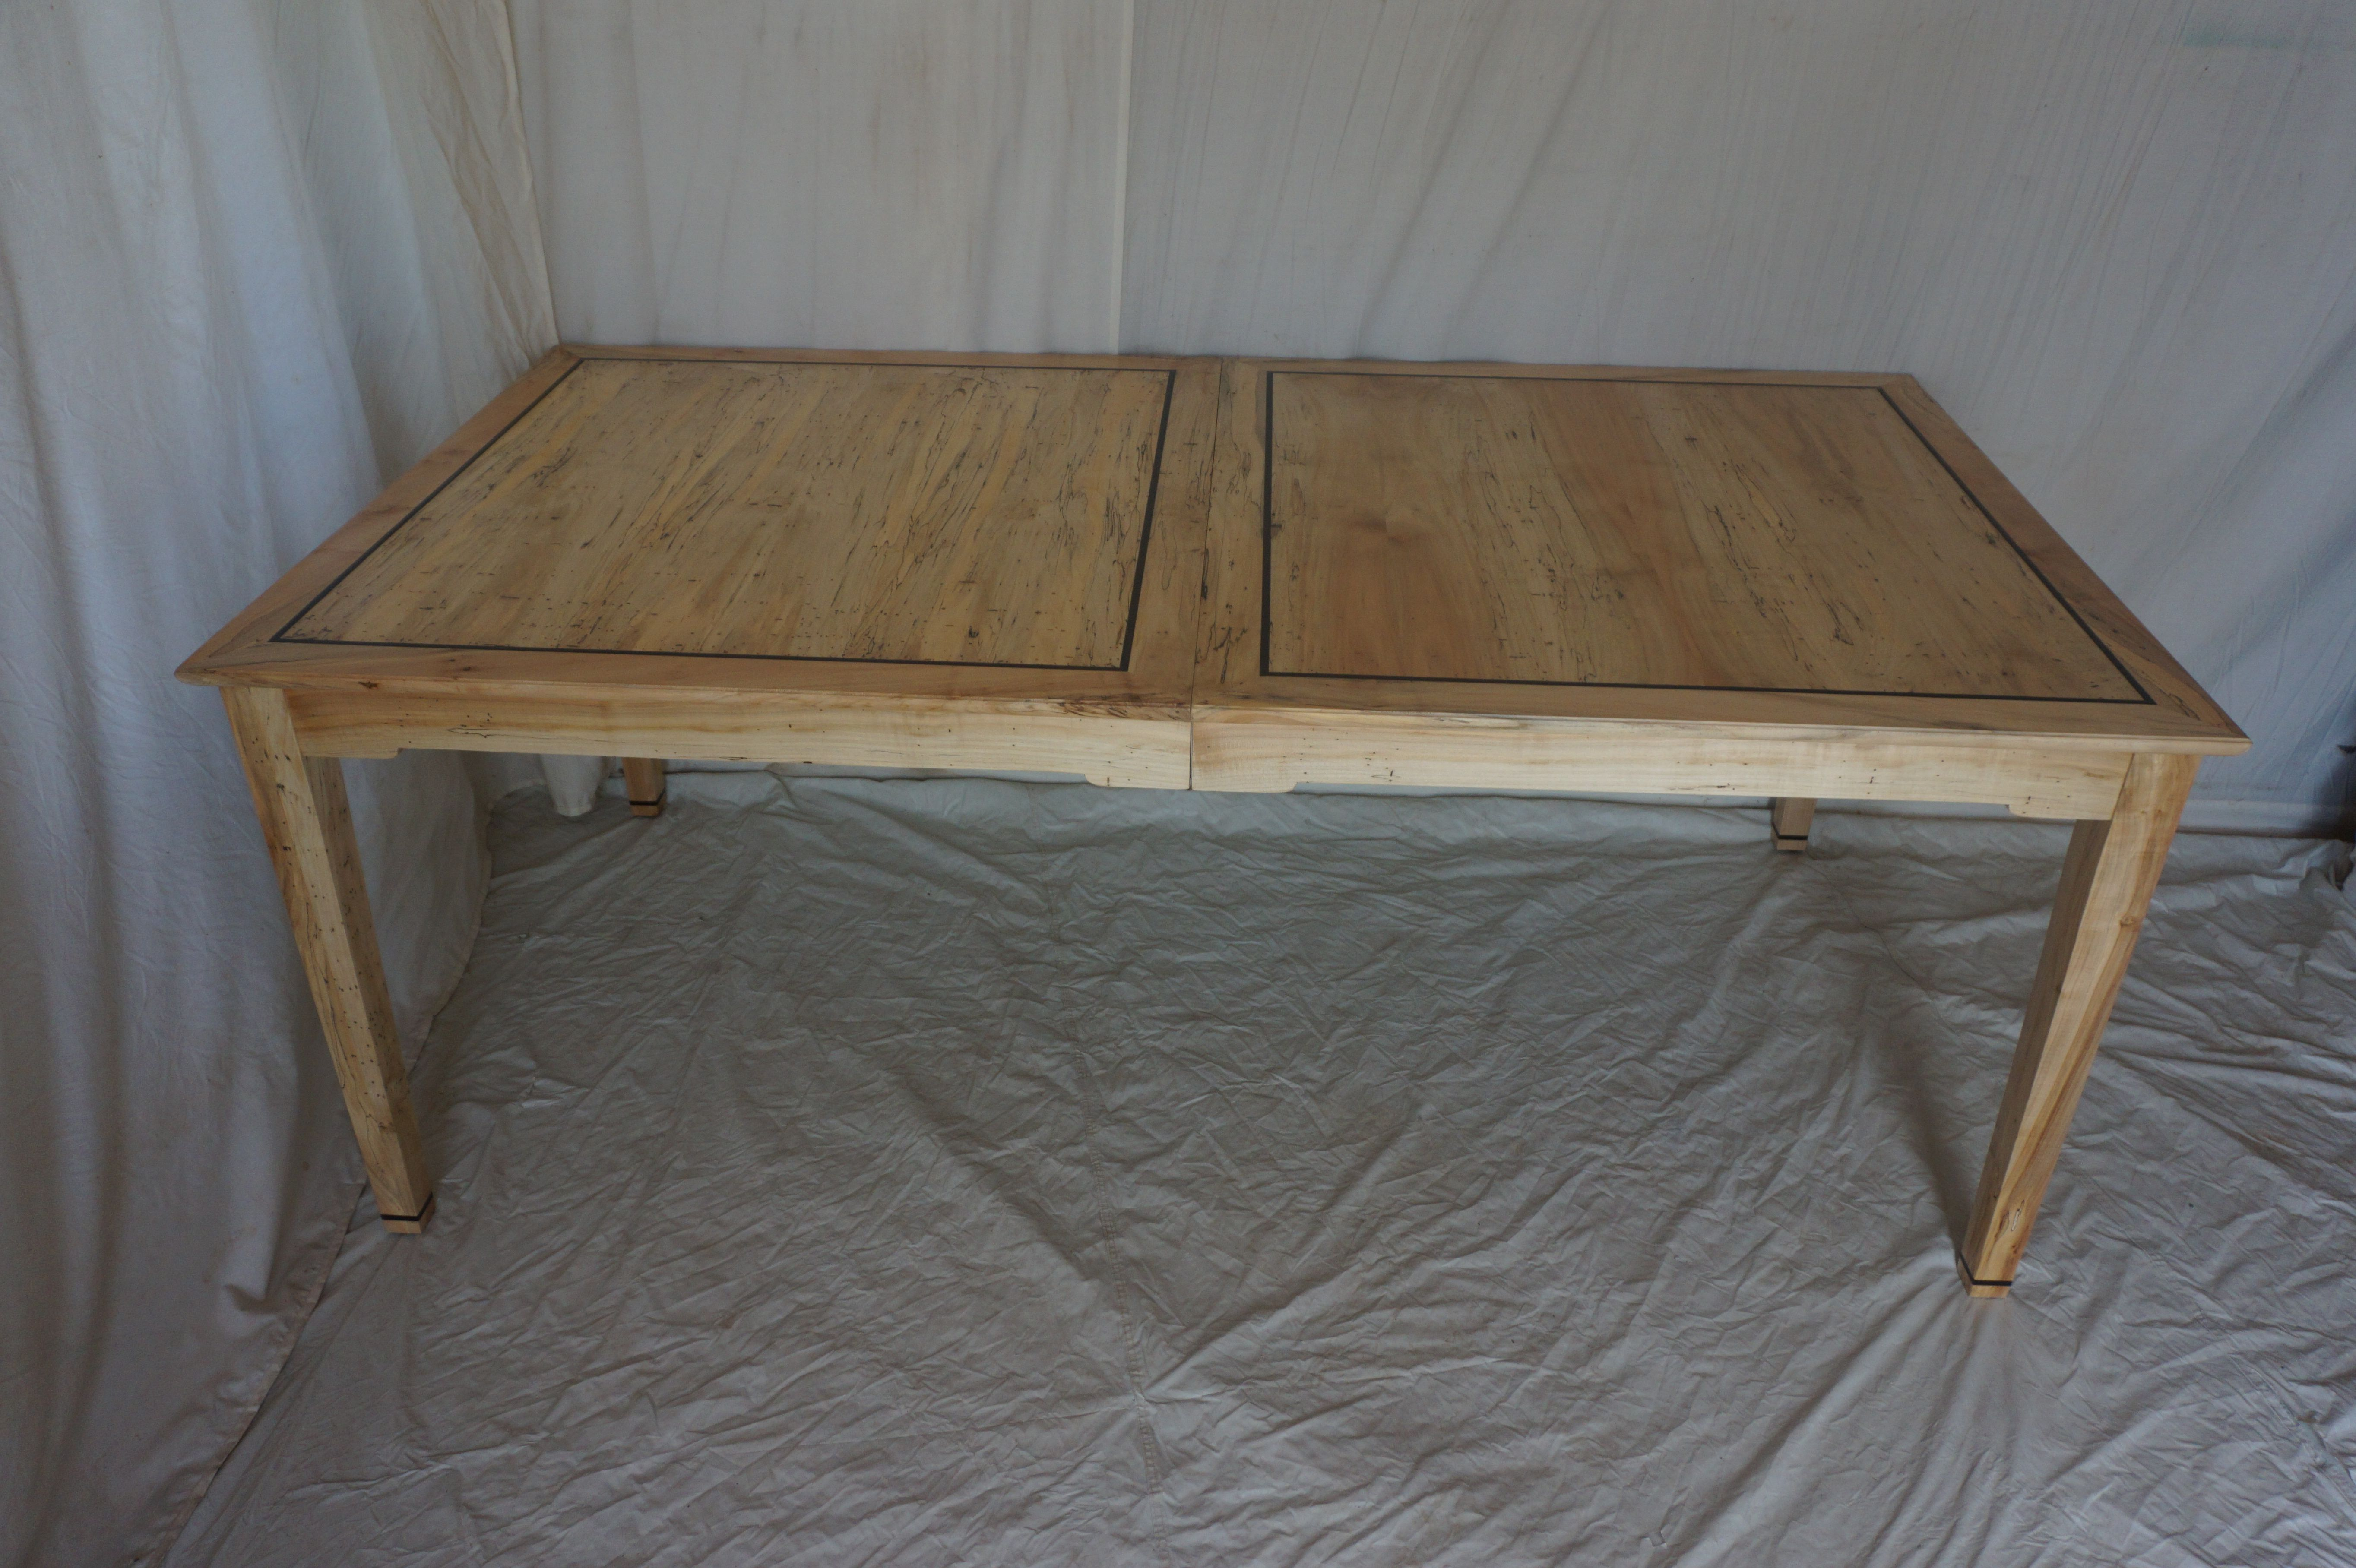 Hand Crafted Spalted Maple Dining Table Extends To Seat 8